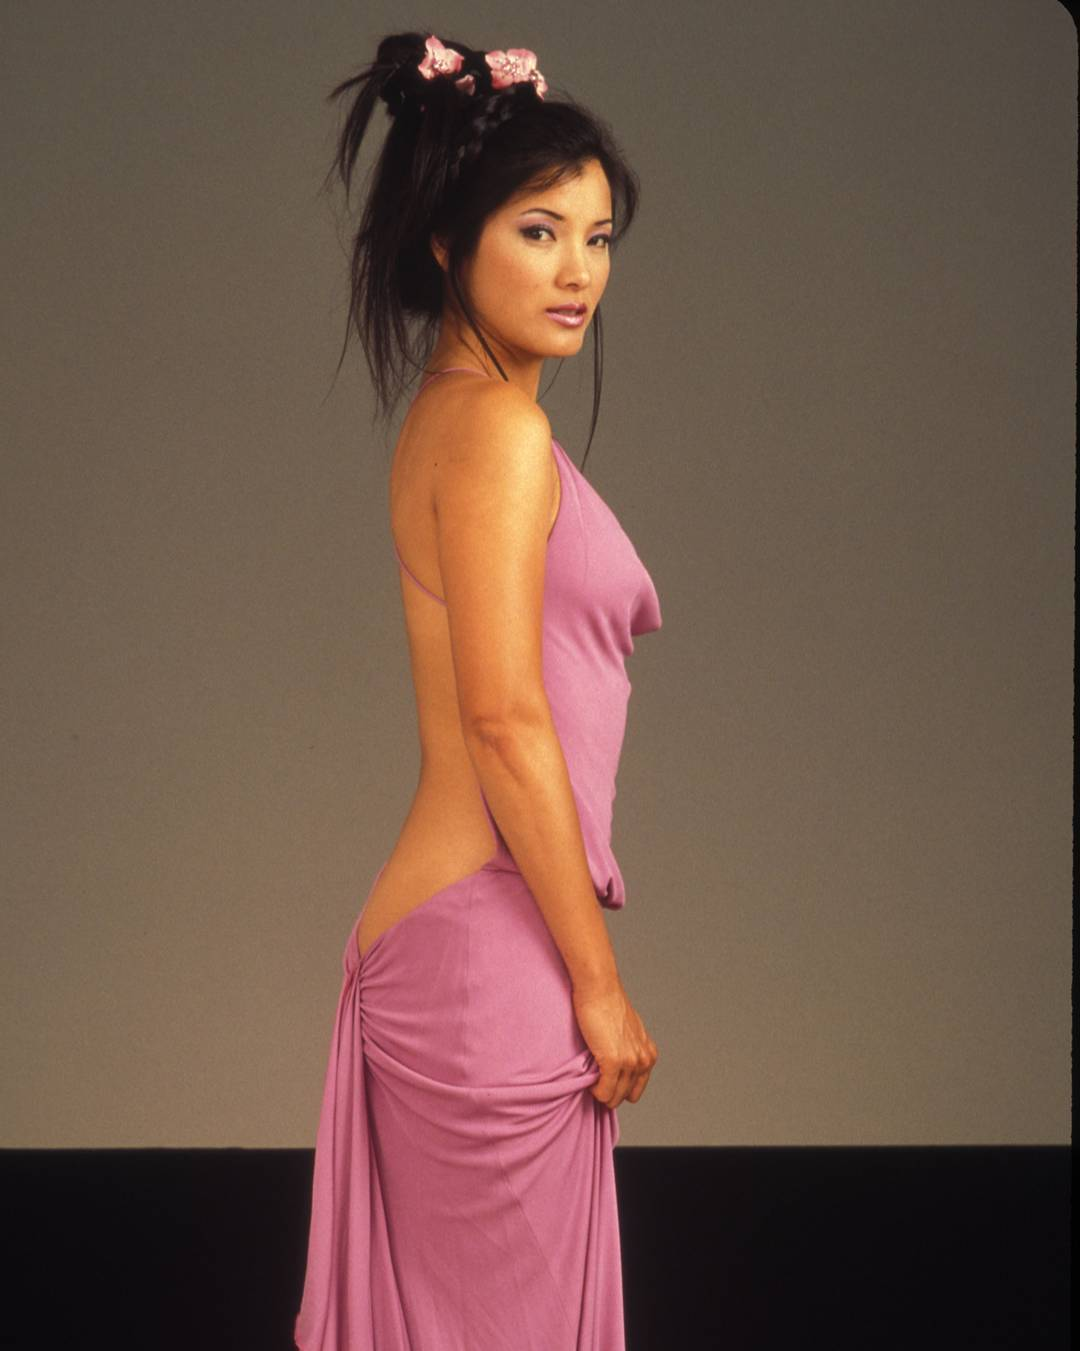 Forum on this topic: Kathy Staff, kelly-hu/